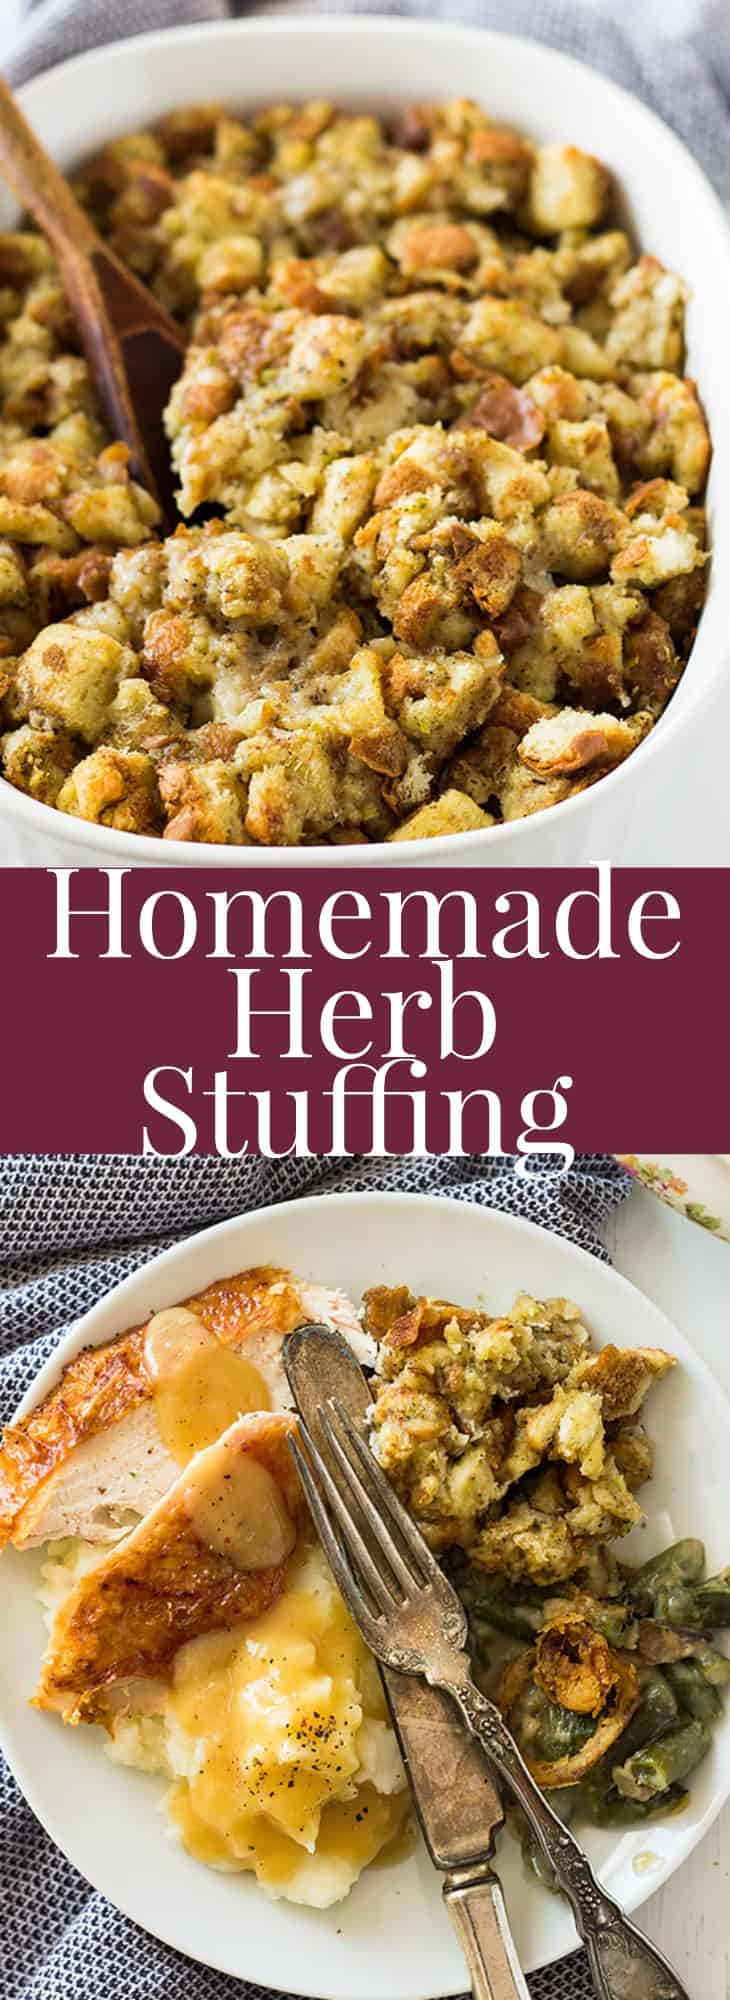 A savory Homemade Herb Stuffing that is perfect for the holidays! | www.countrysidecravings.com